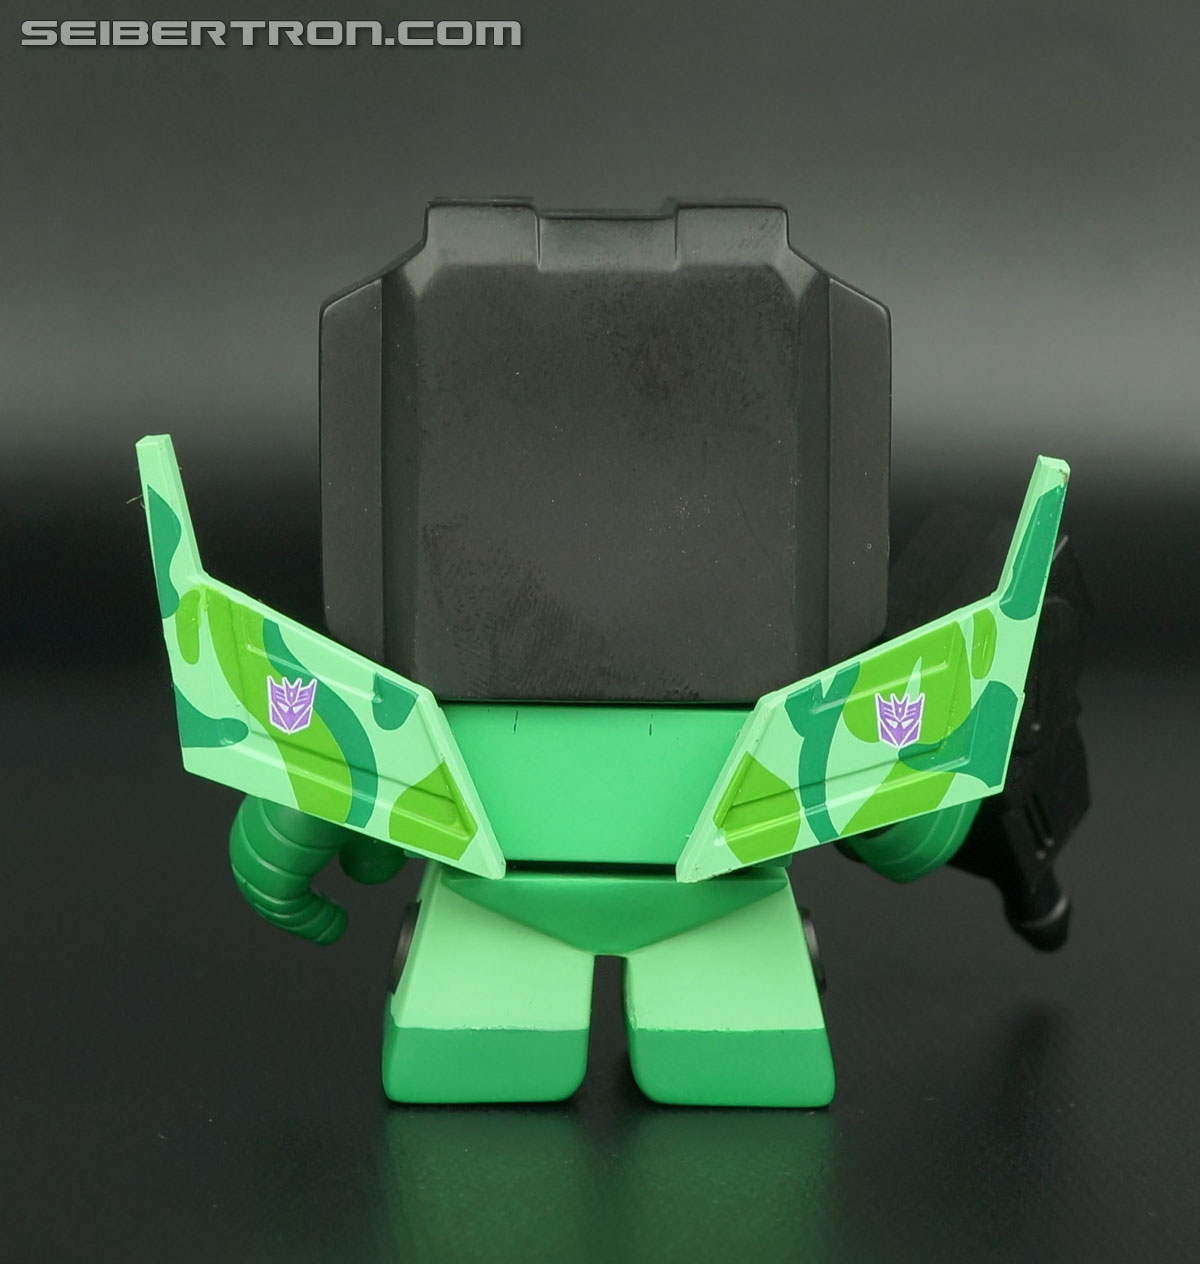 Transformers Loyal Subjects Rainmaker (Green) (Acid Storm) (Image #20 of 40)